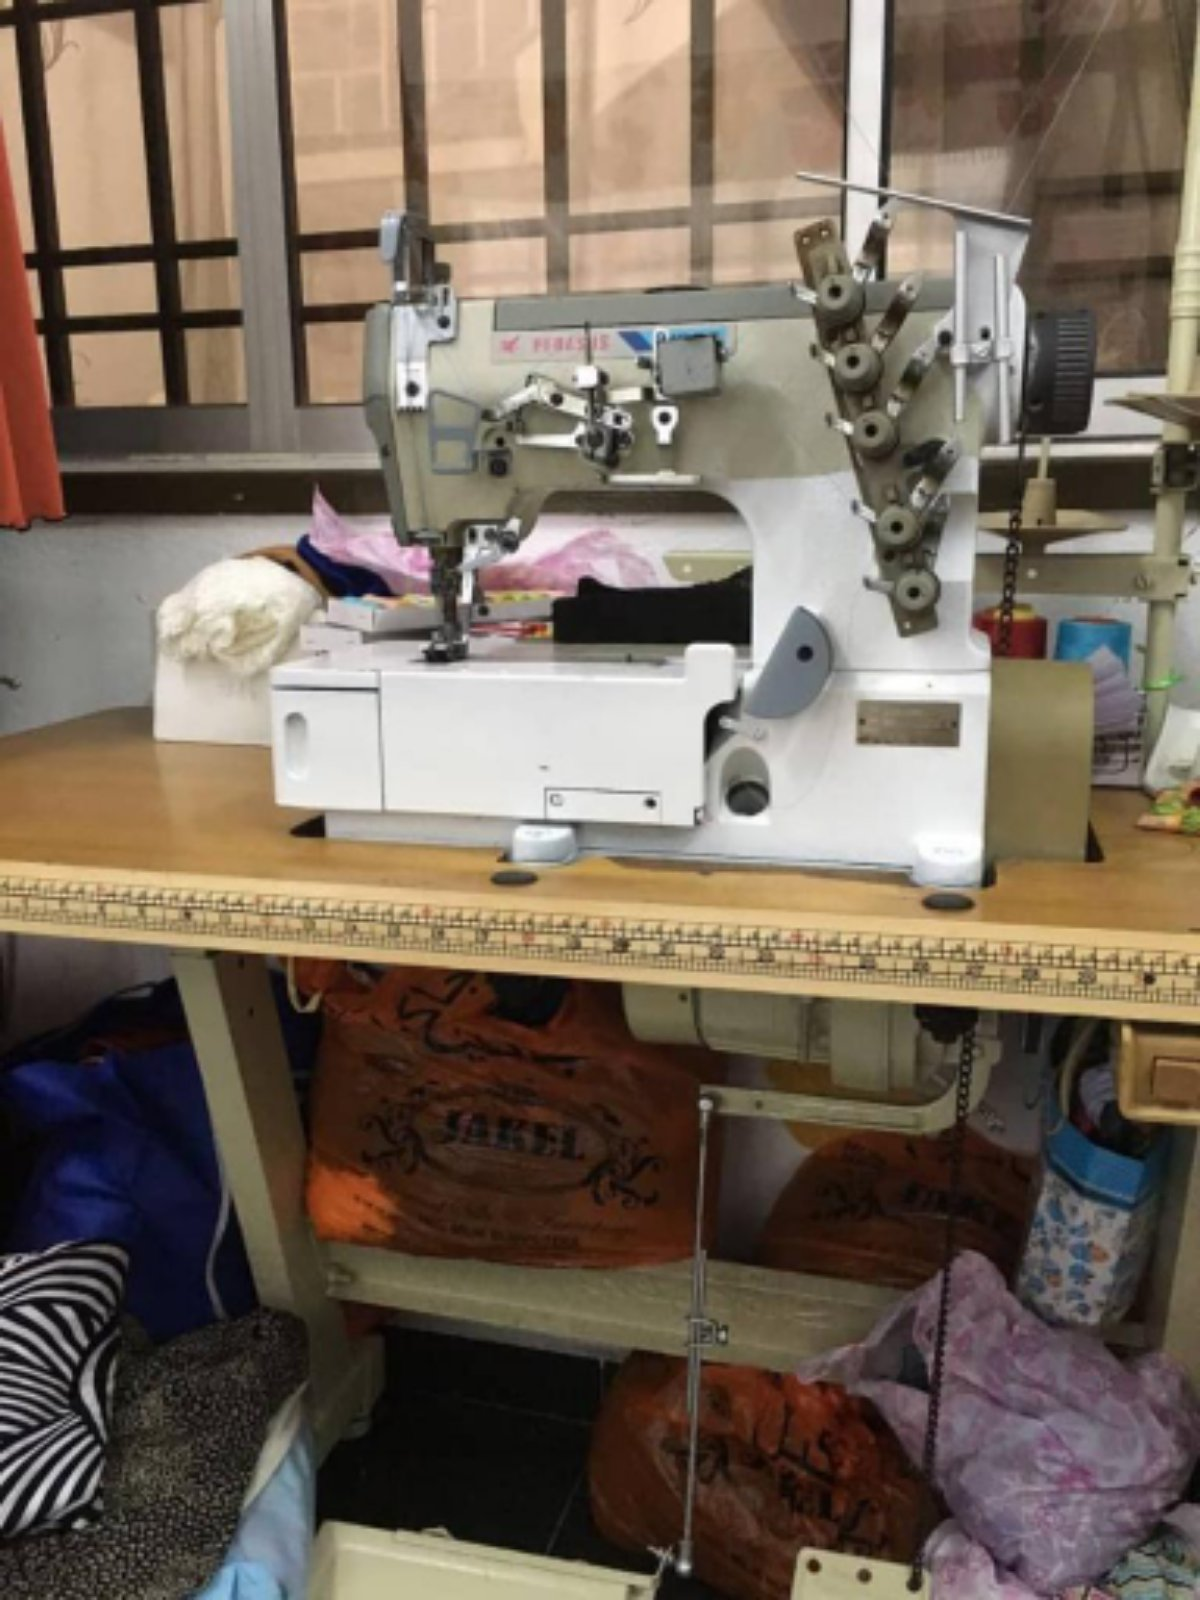 2nd Pegasus Interlock Industrial sewing machine